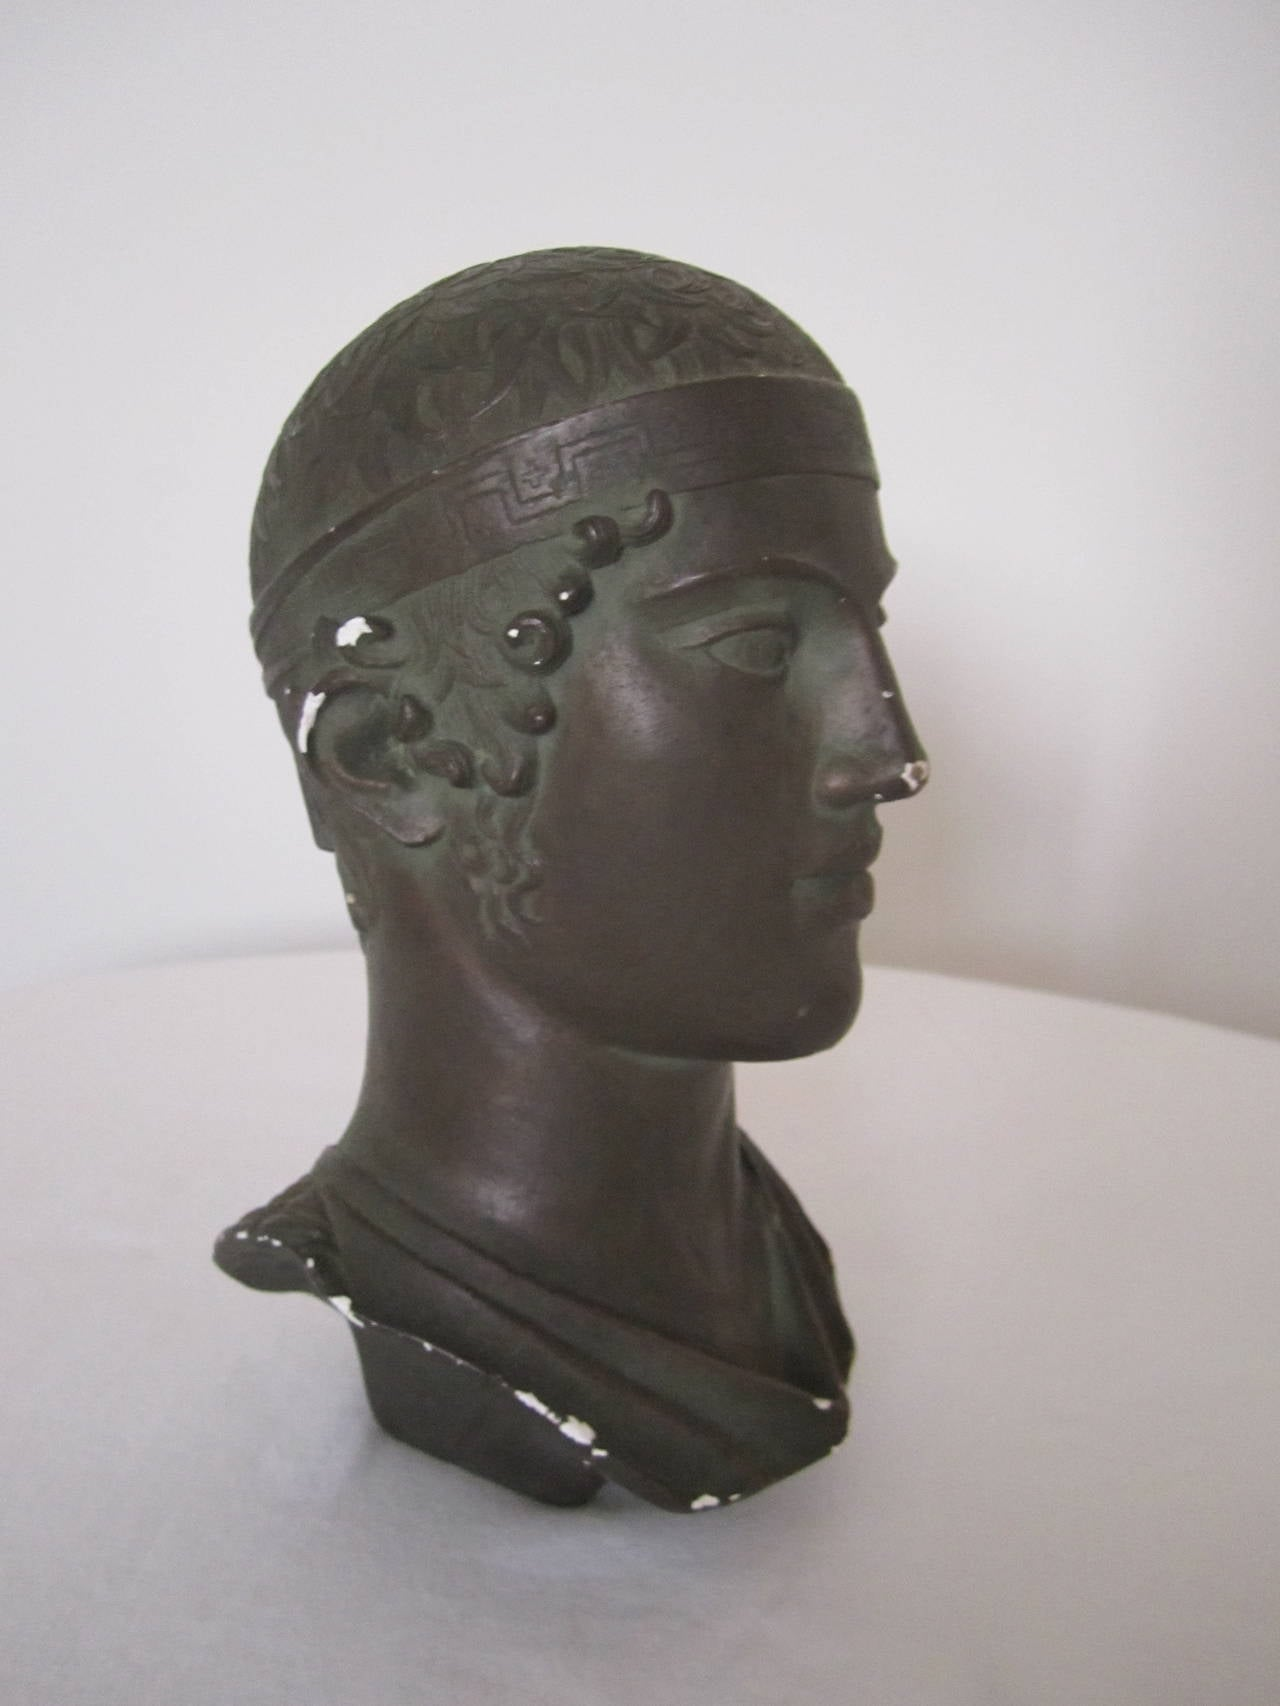 Greek or Roman Head Bust Sculpture, 1965 For Sale 4